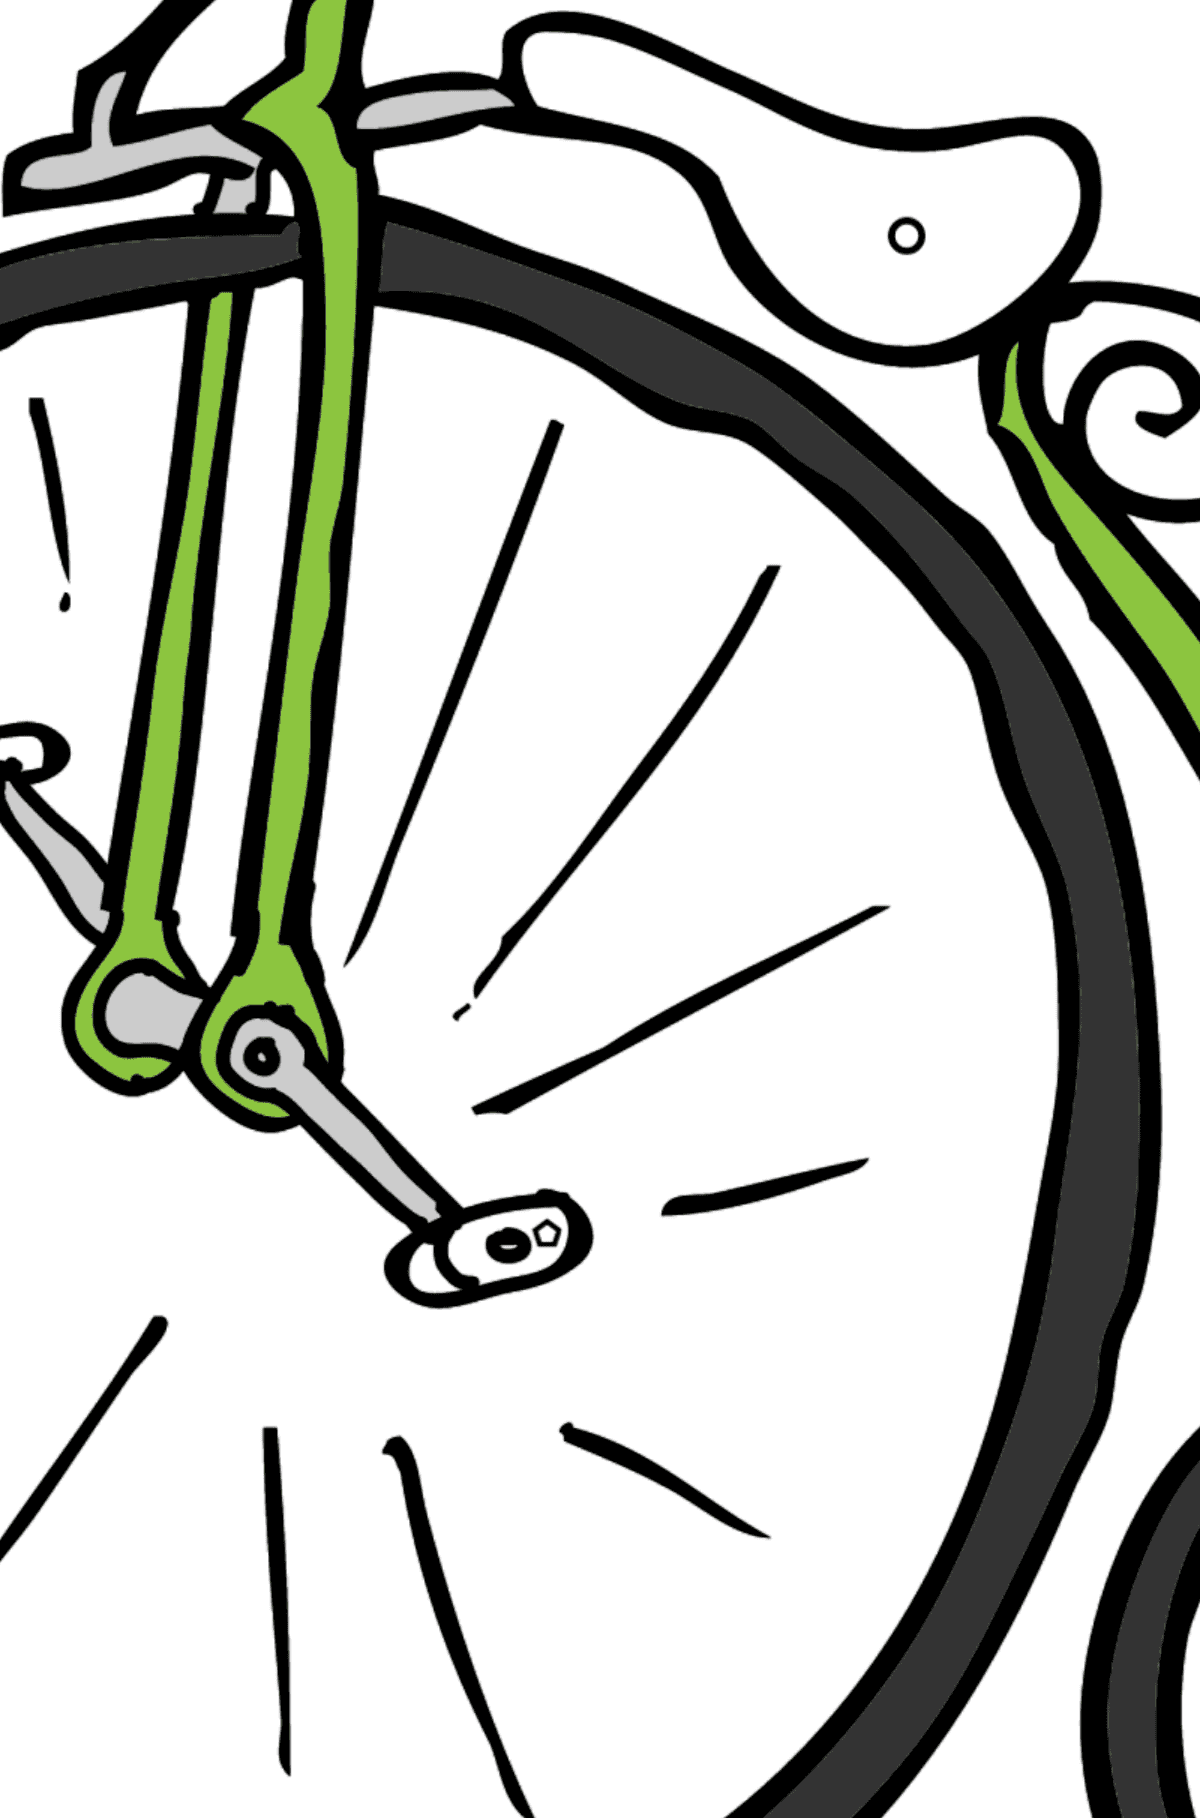 Coloring Page - A High-Wheel Cycle – Unicycle - Coloring by Geometric Shapes for Kids